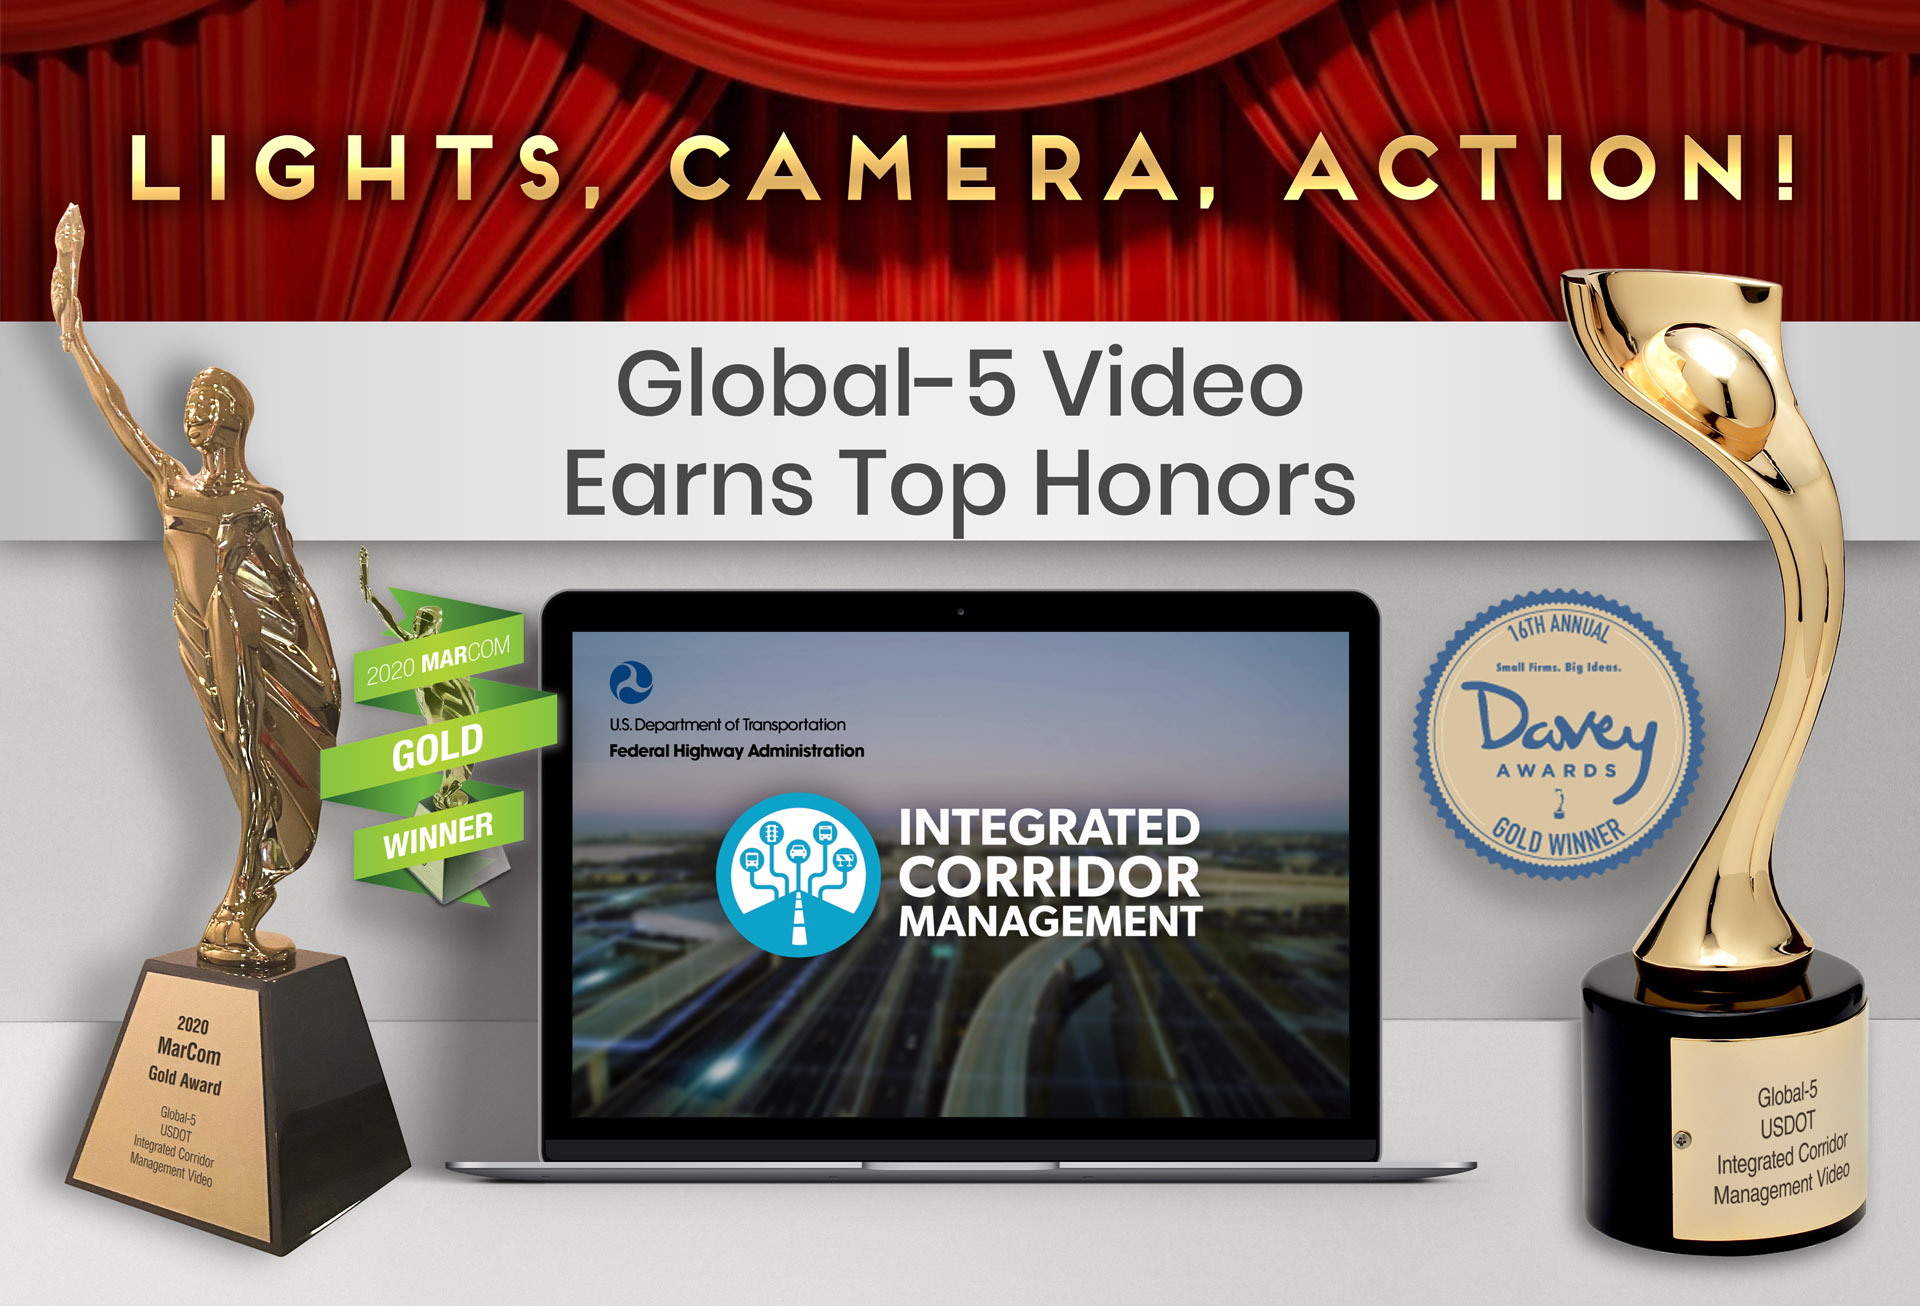 Global-5 Video Earns Top Honors